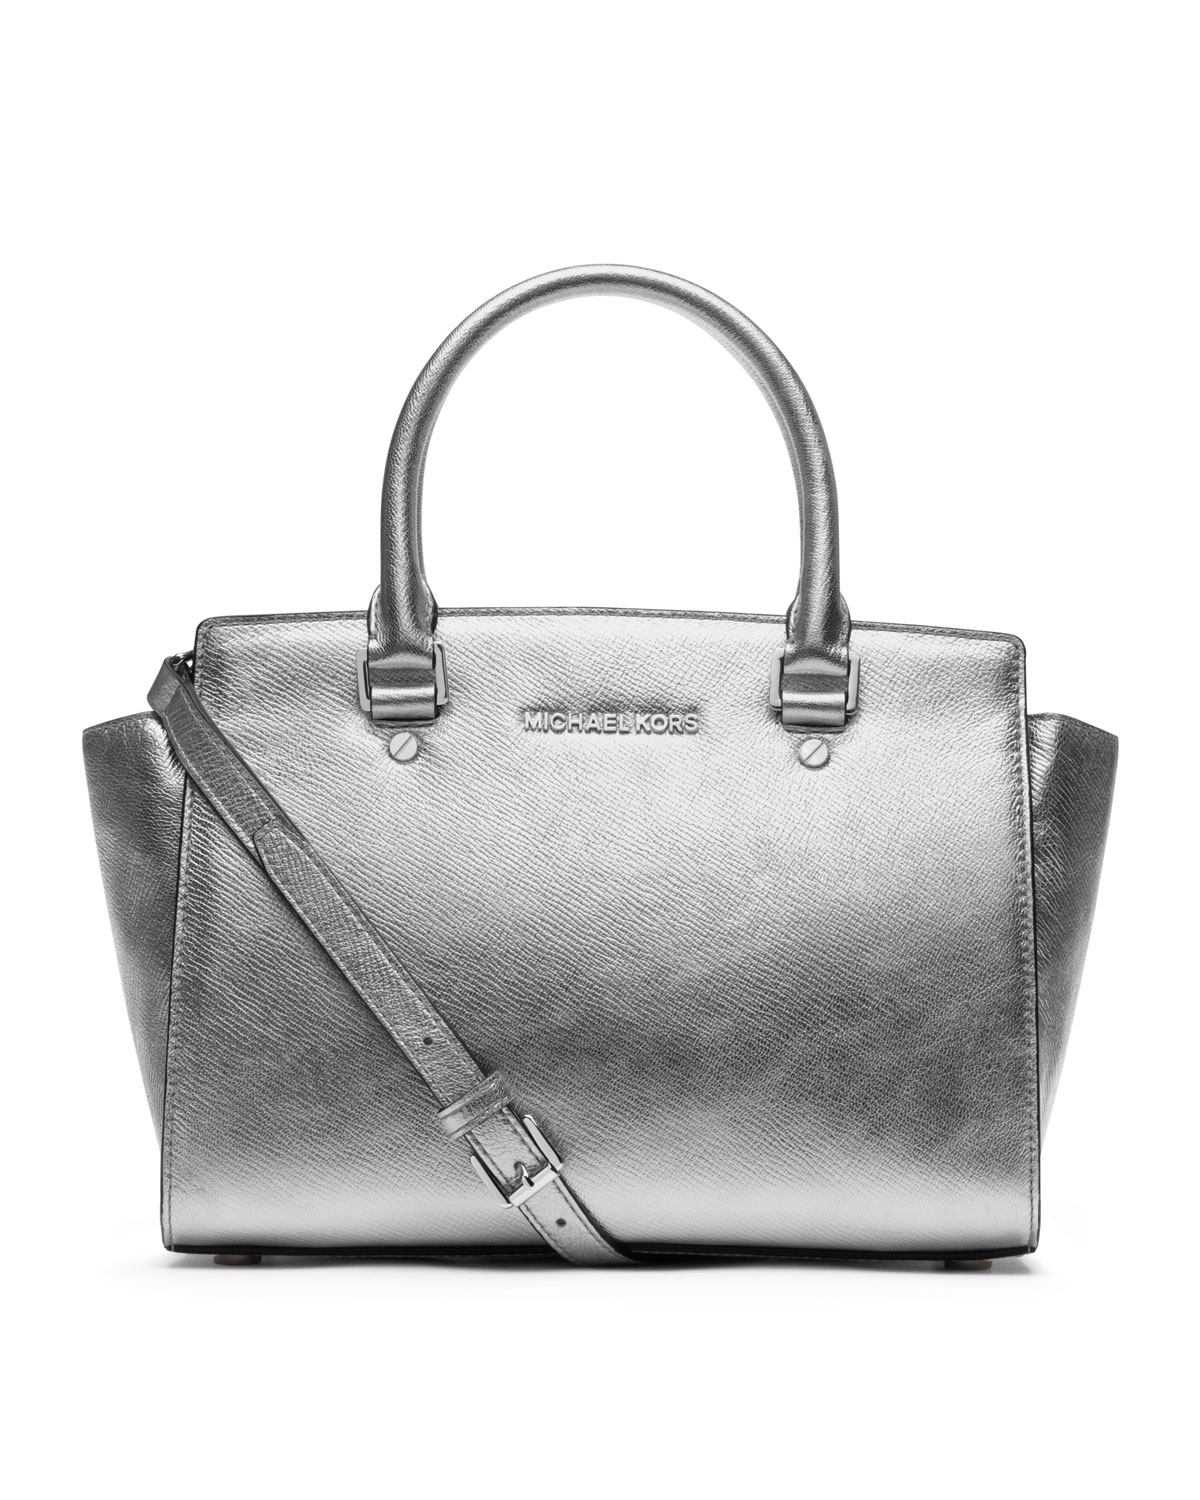 e03d27964 Michael Kors Michael Medium Selma Topzip Satchel in Metallic - Lyst